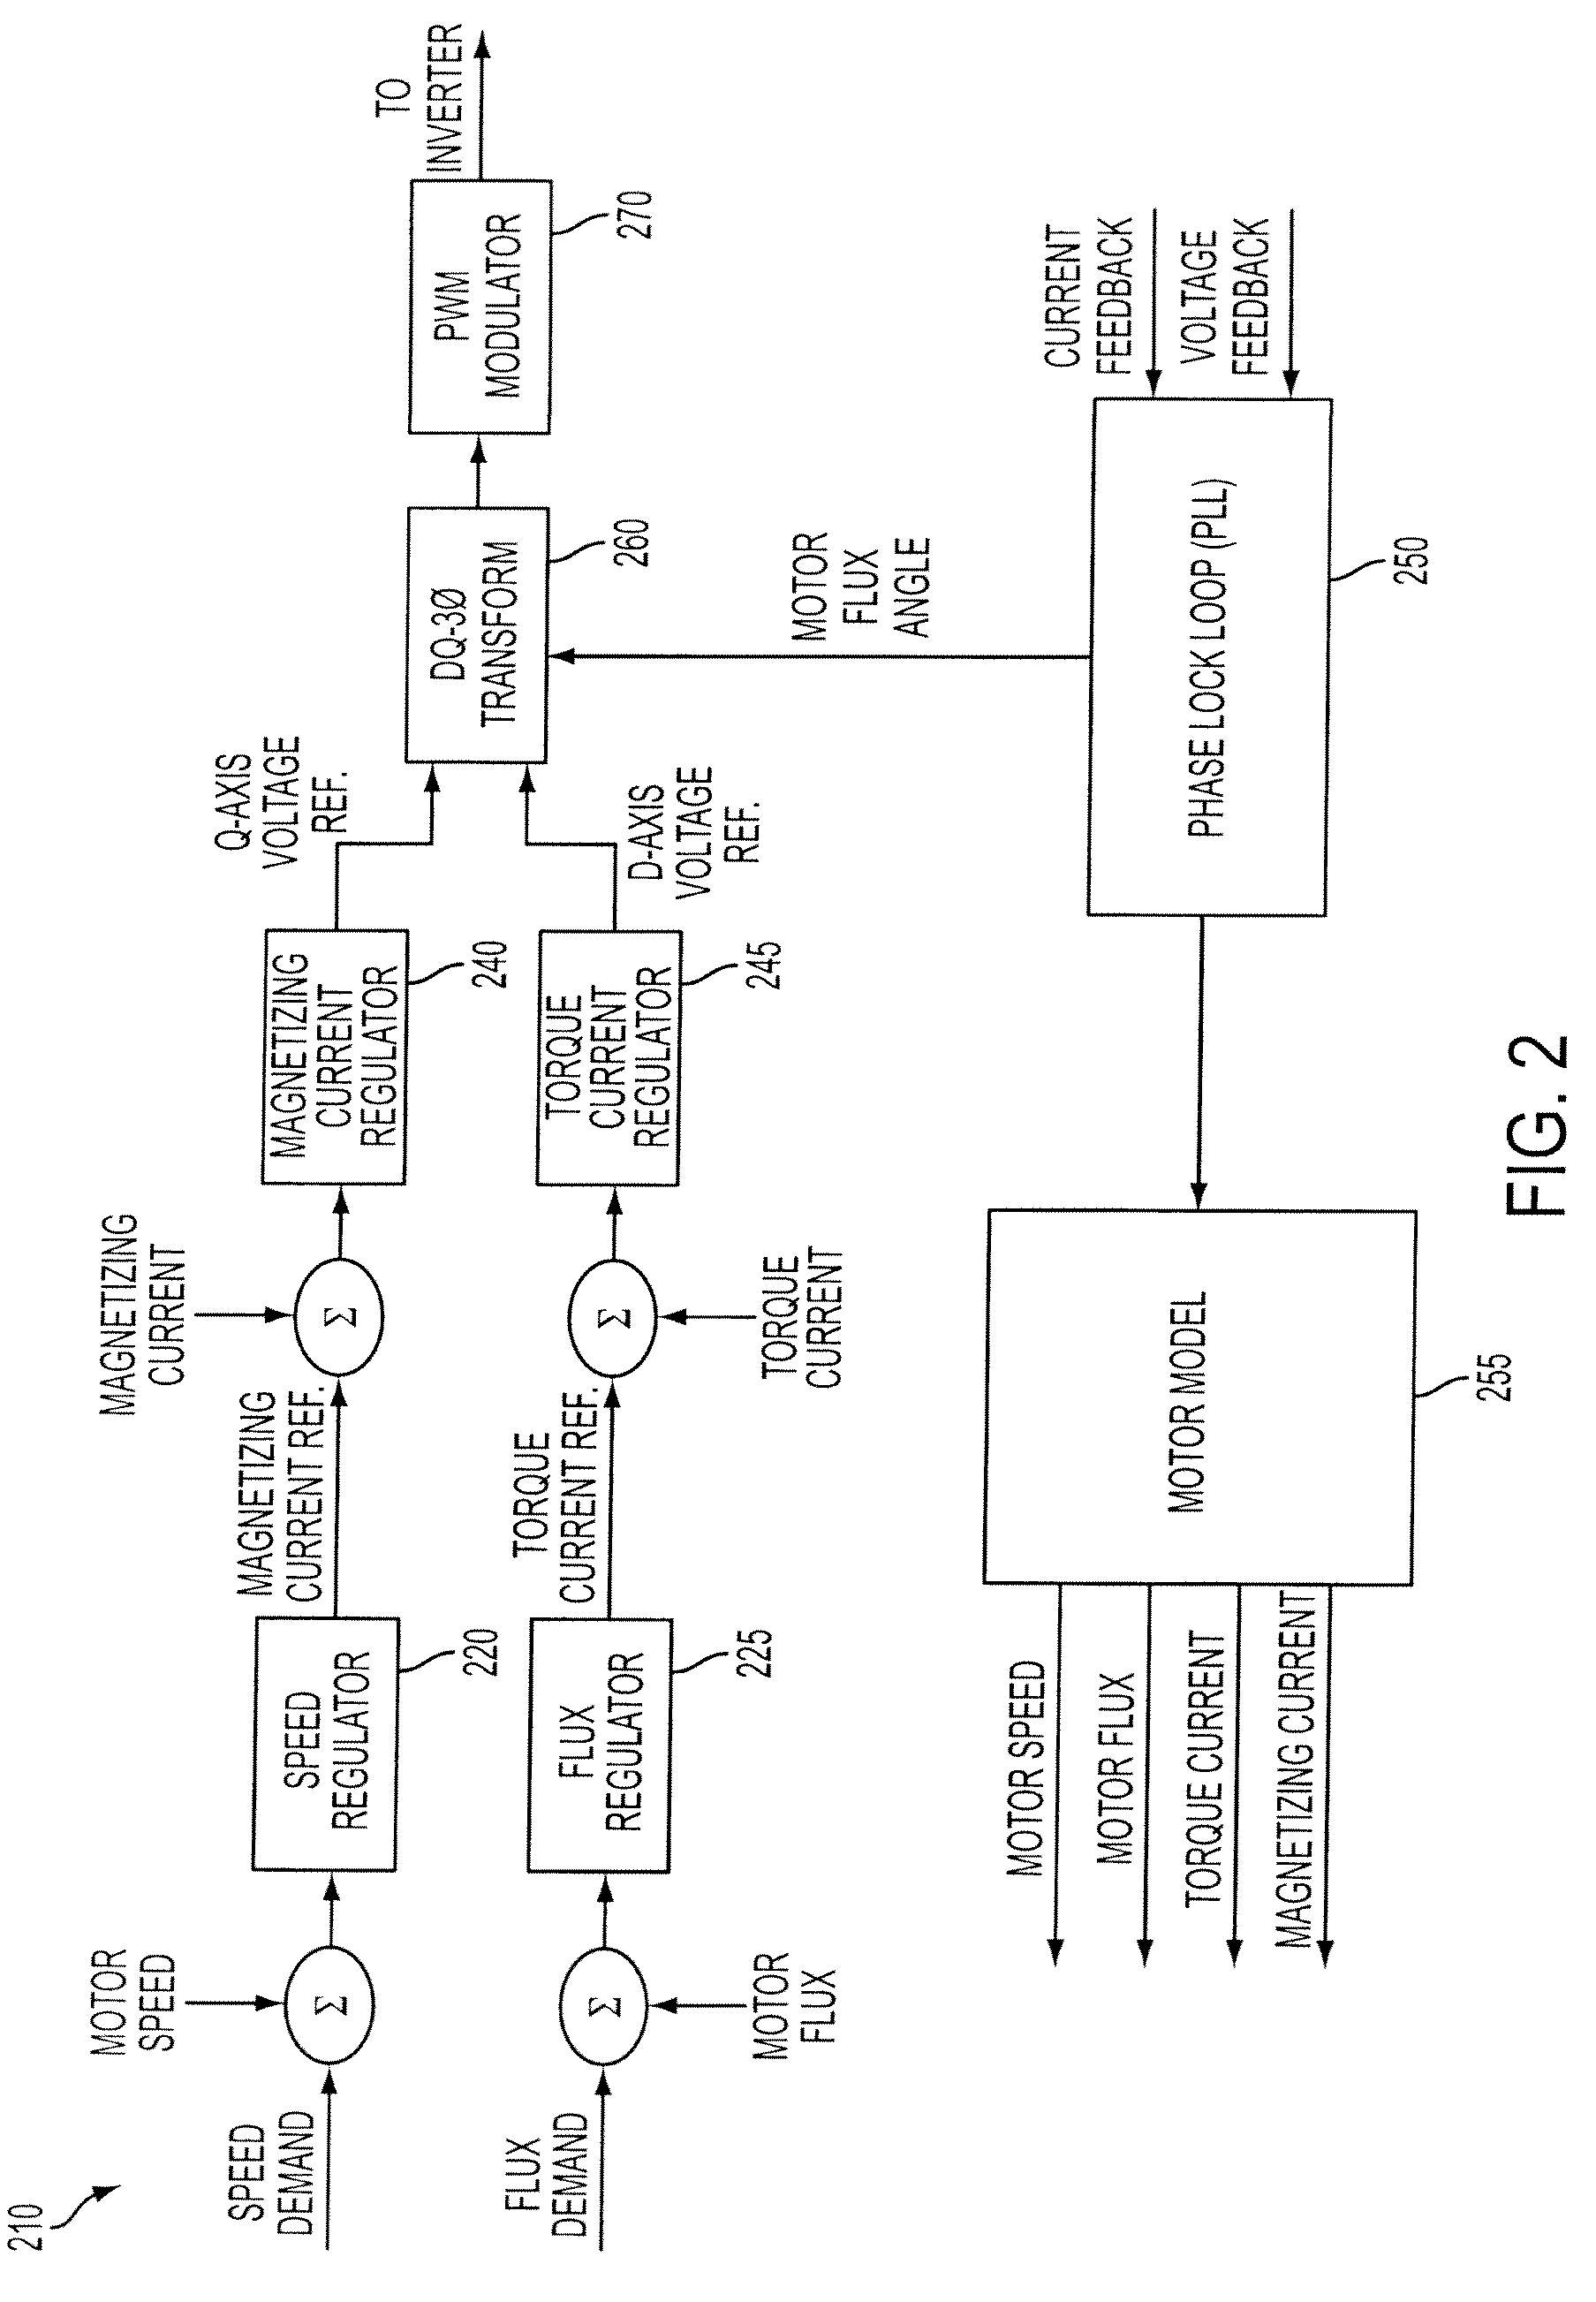 patent us7977910 - method of starting a synchronous motor with a brushless dc exciter